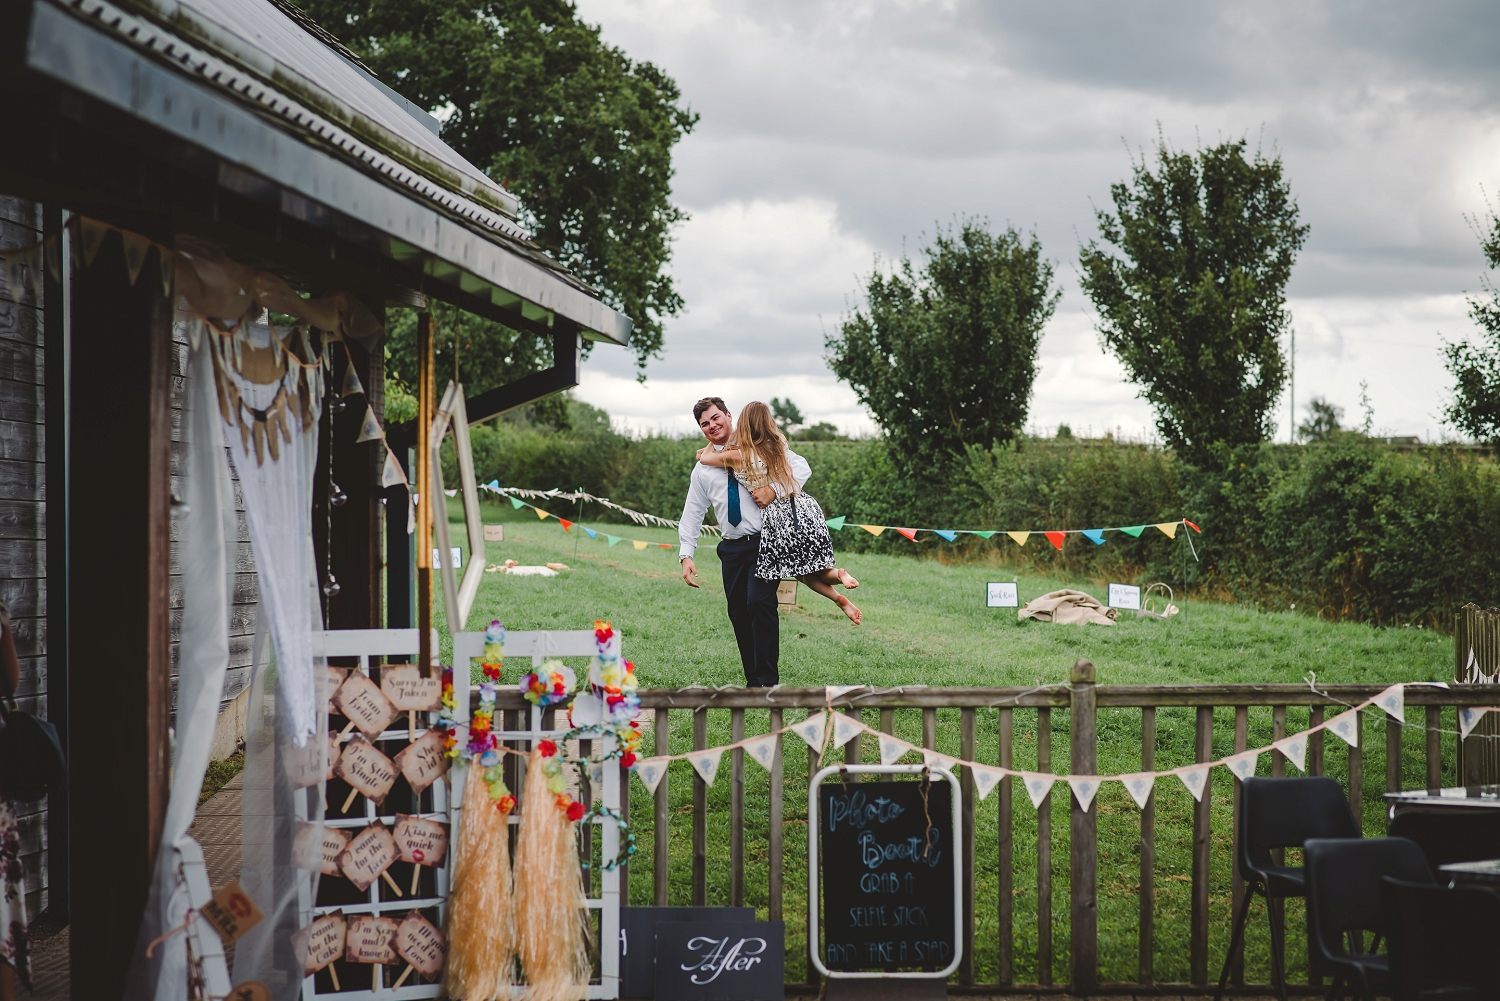 Jam_Jar_Wedding_Rock_Village_Hall_0075.jpg